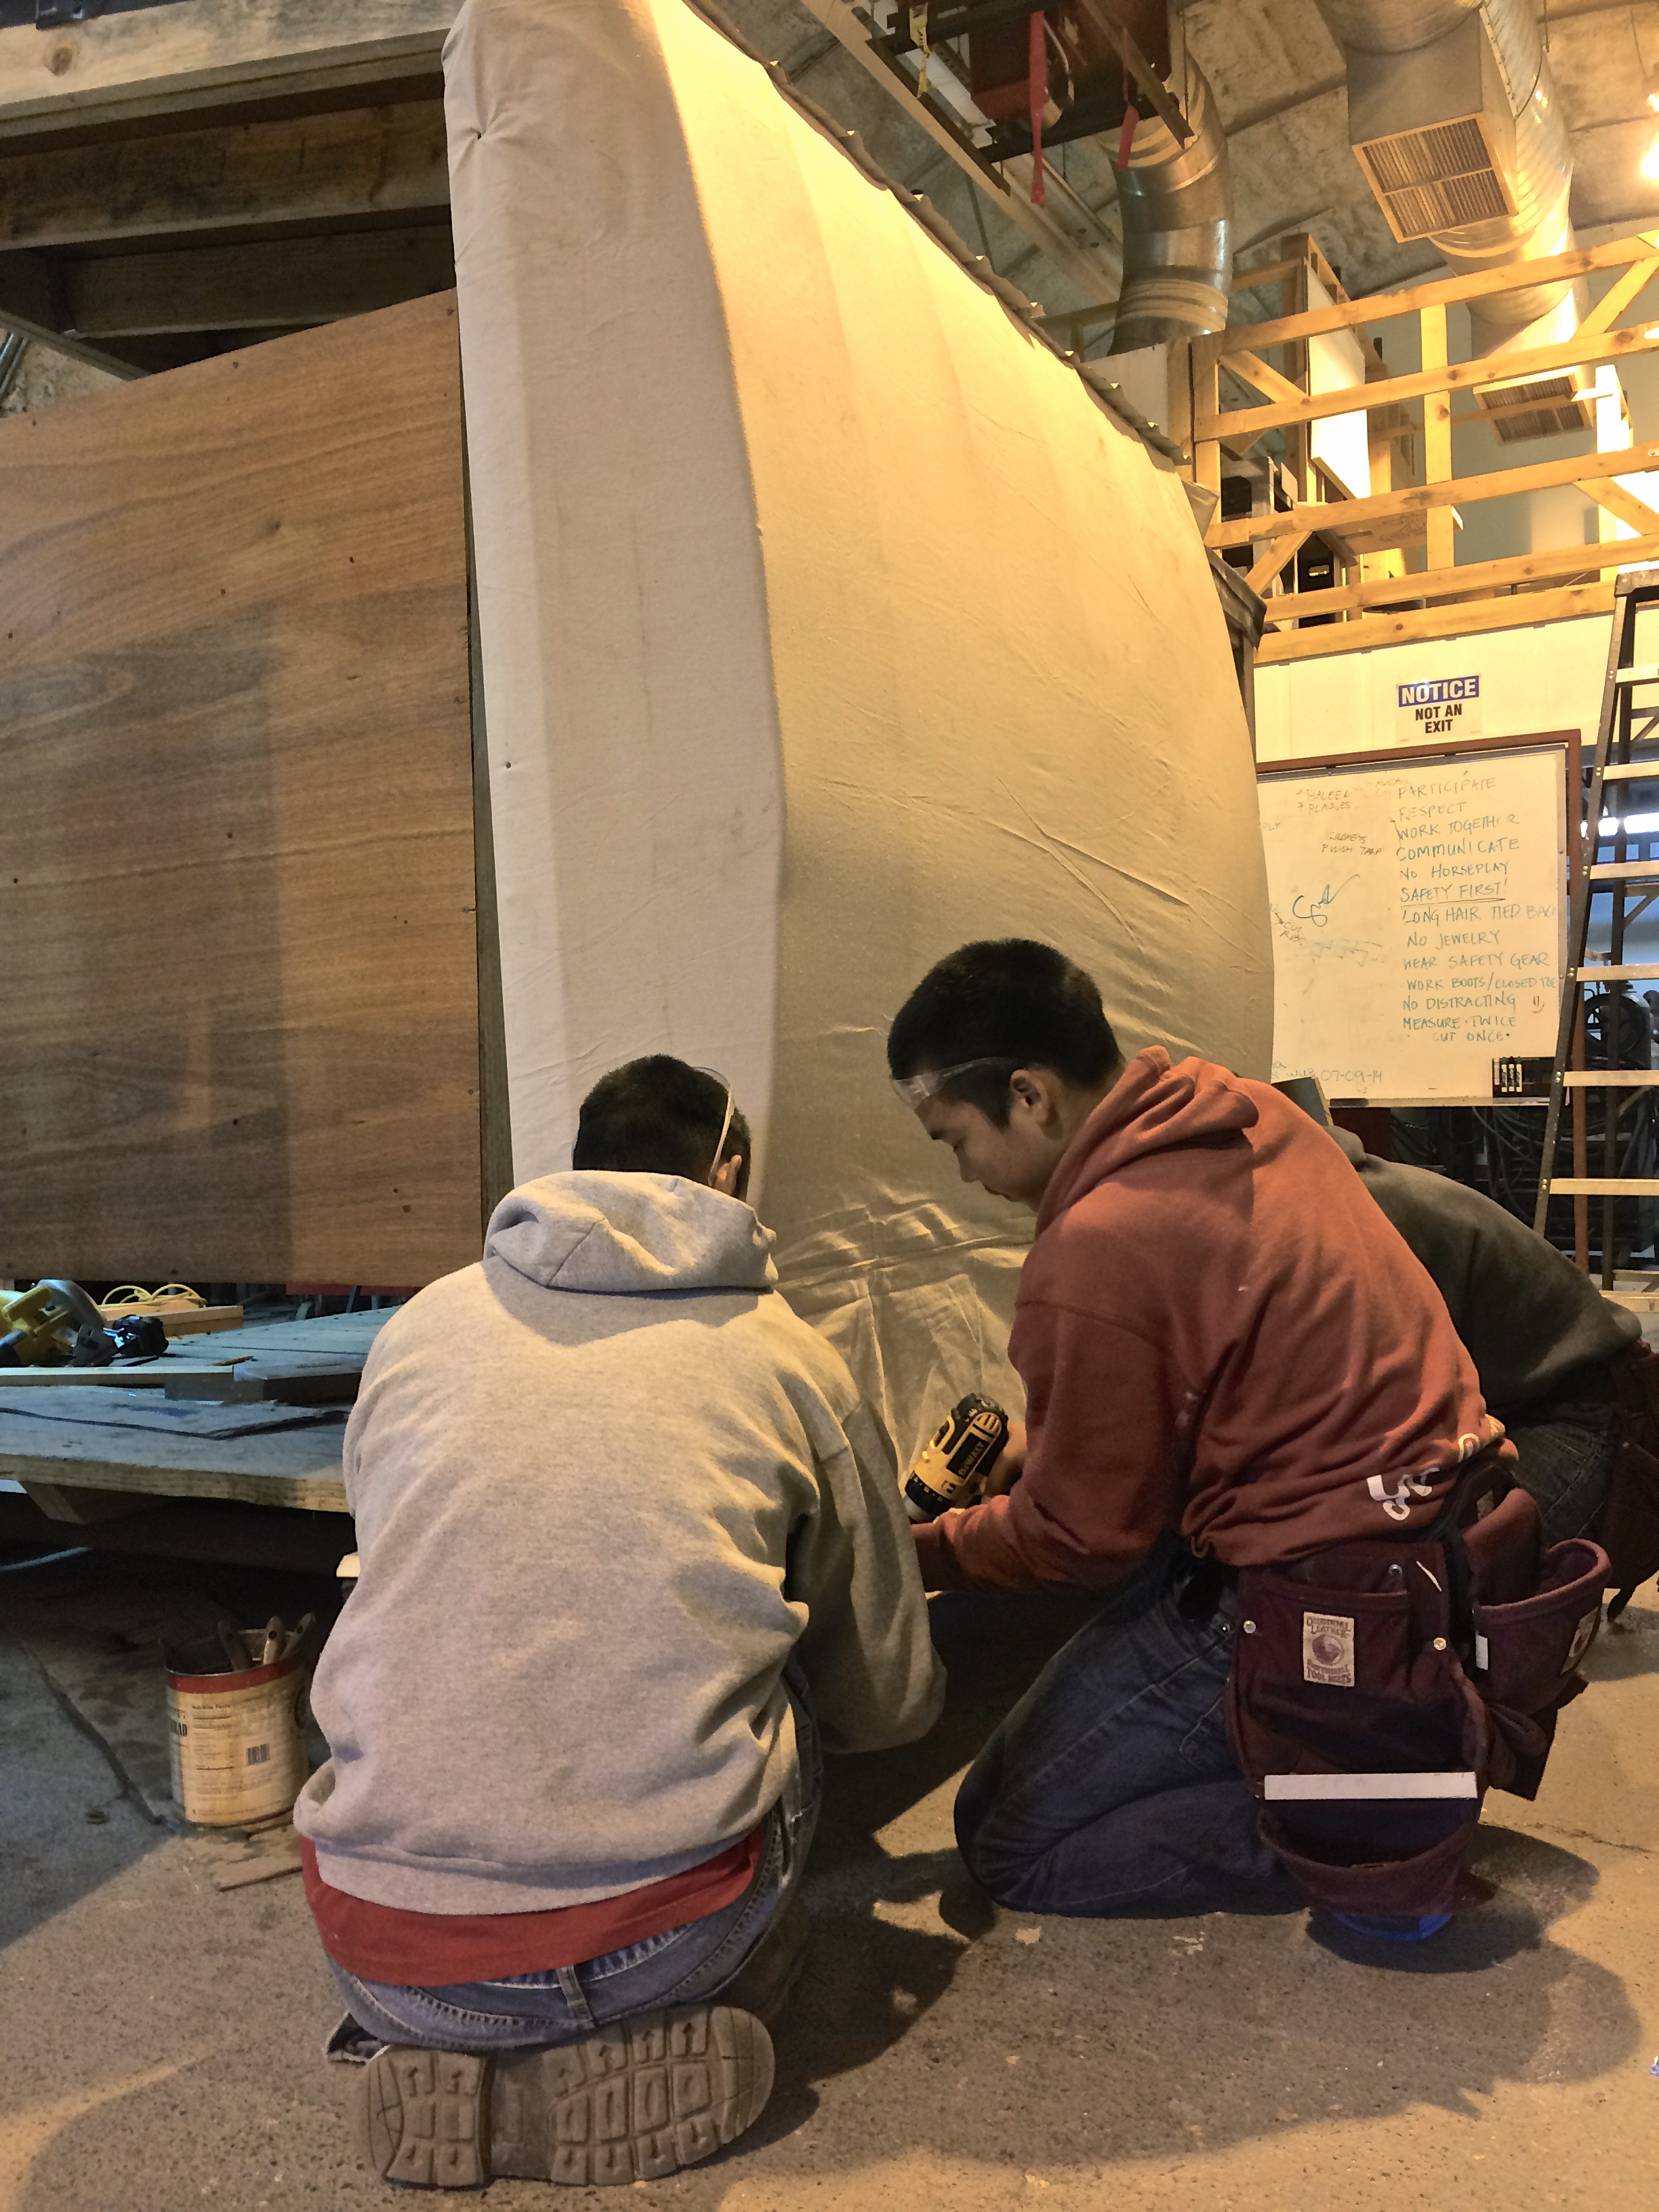 Stretching canvas over the ribs, like skins on an umiaq (skin boat).